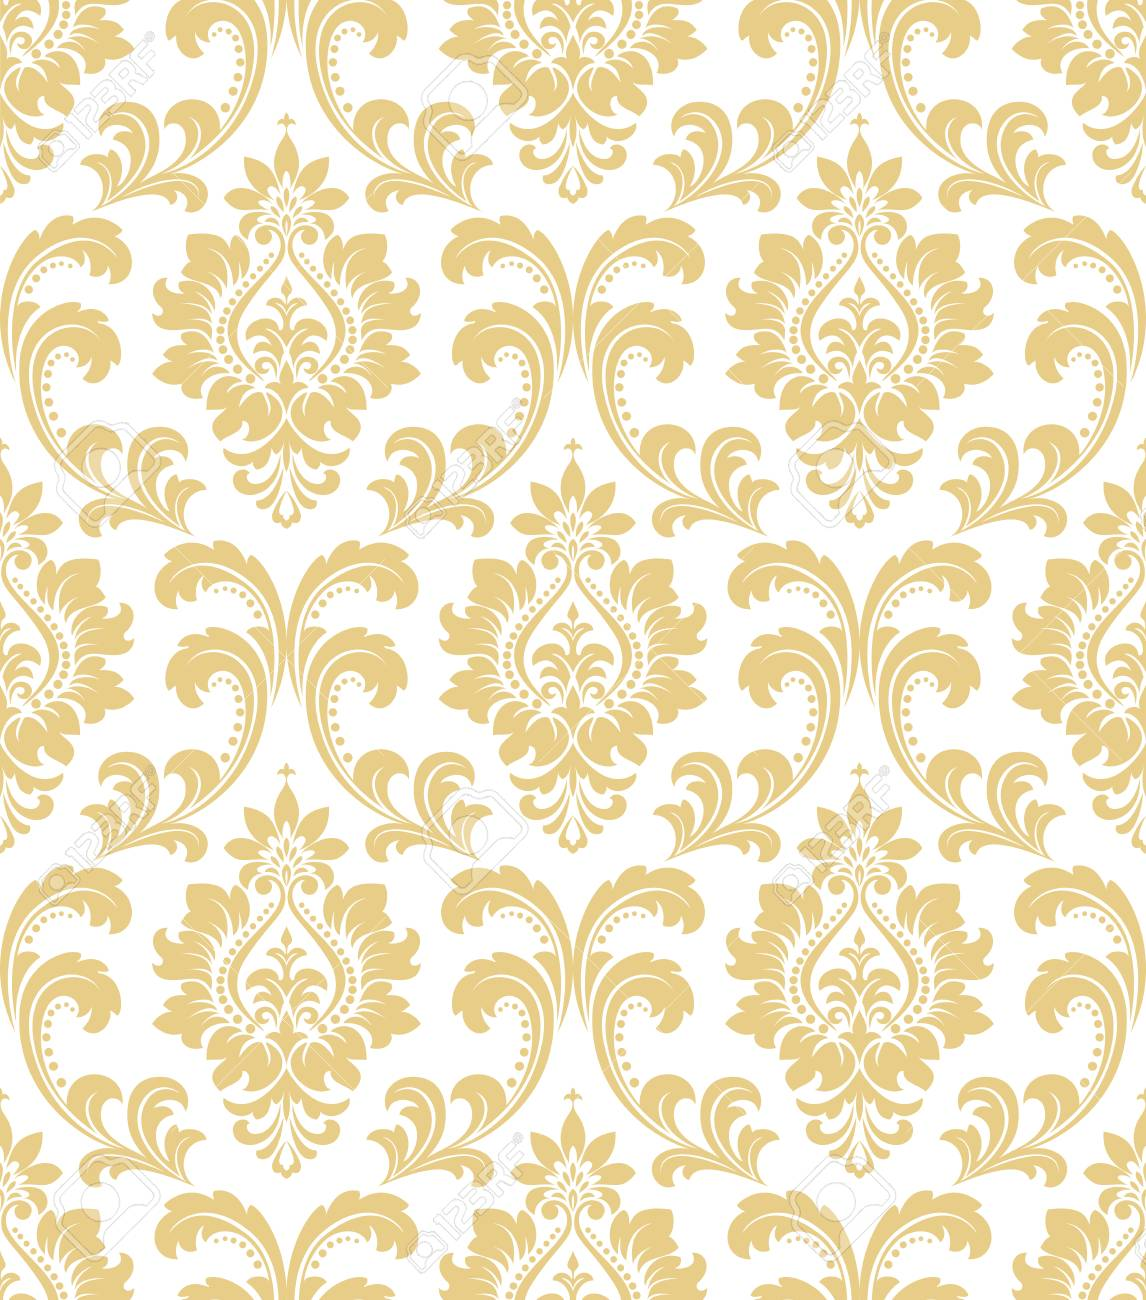 Floral pattern  Wallpaper baroque, damask  Seamless vector background